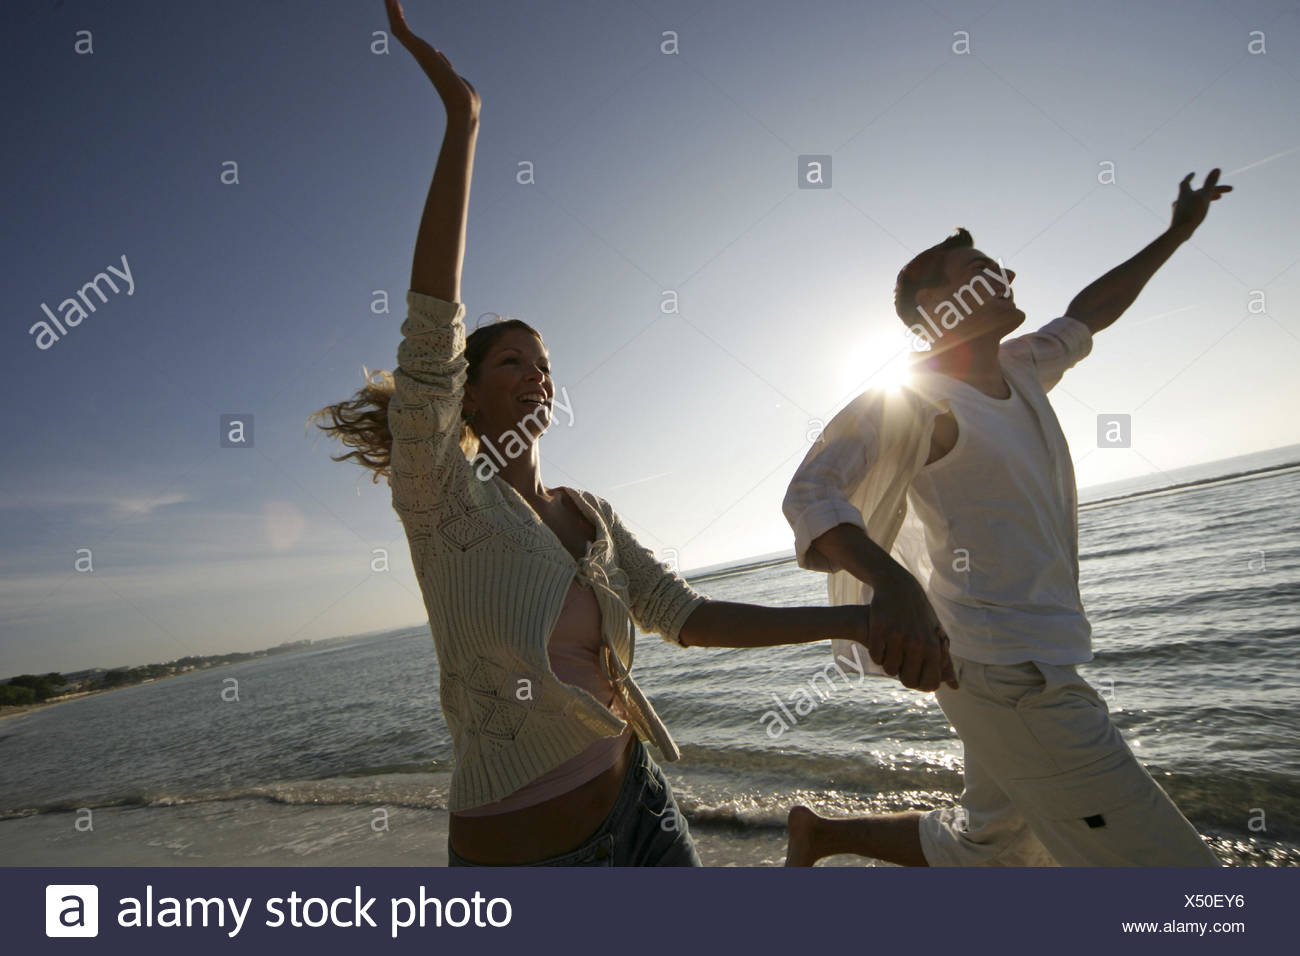 Beach, vacation, summers, pair, runs, cheerfully, omitted, - Stock Image